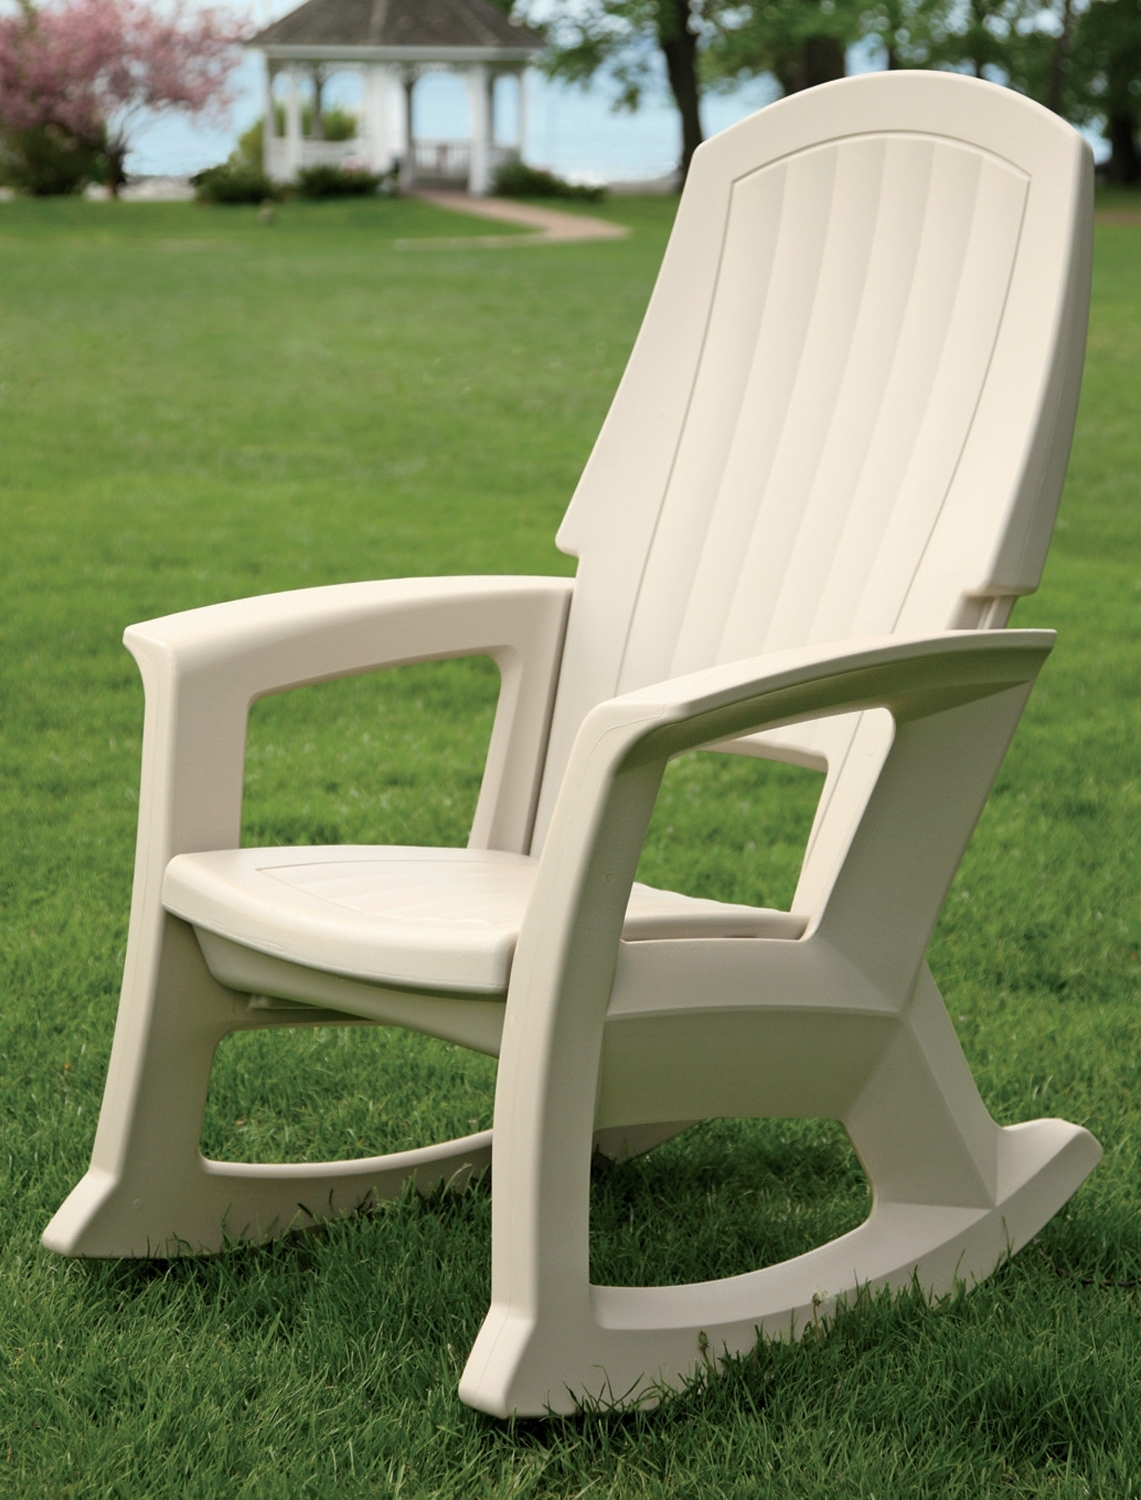 2018 Used Patio Rocking Chairs Regarding Patio Rocking Chair Oversized Outdoor Chairs Best For Small Nursery (View 9 of 15)